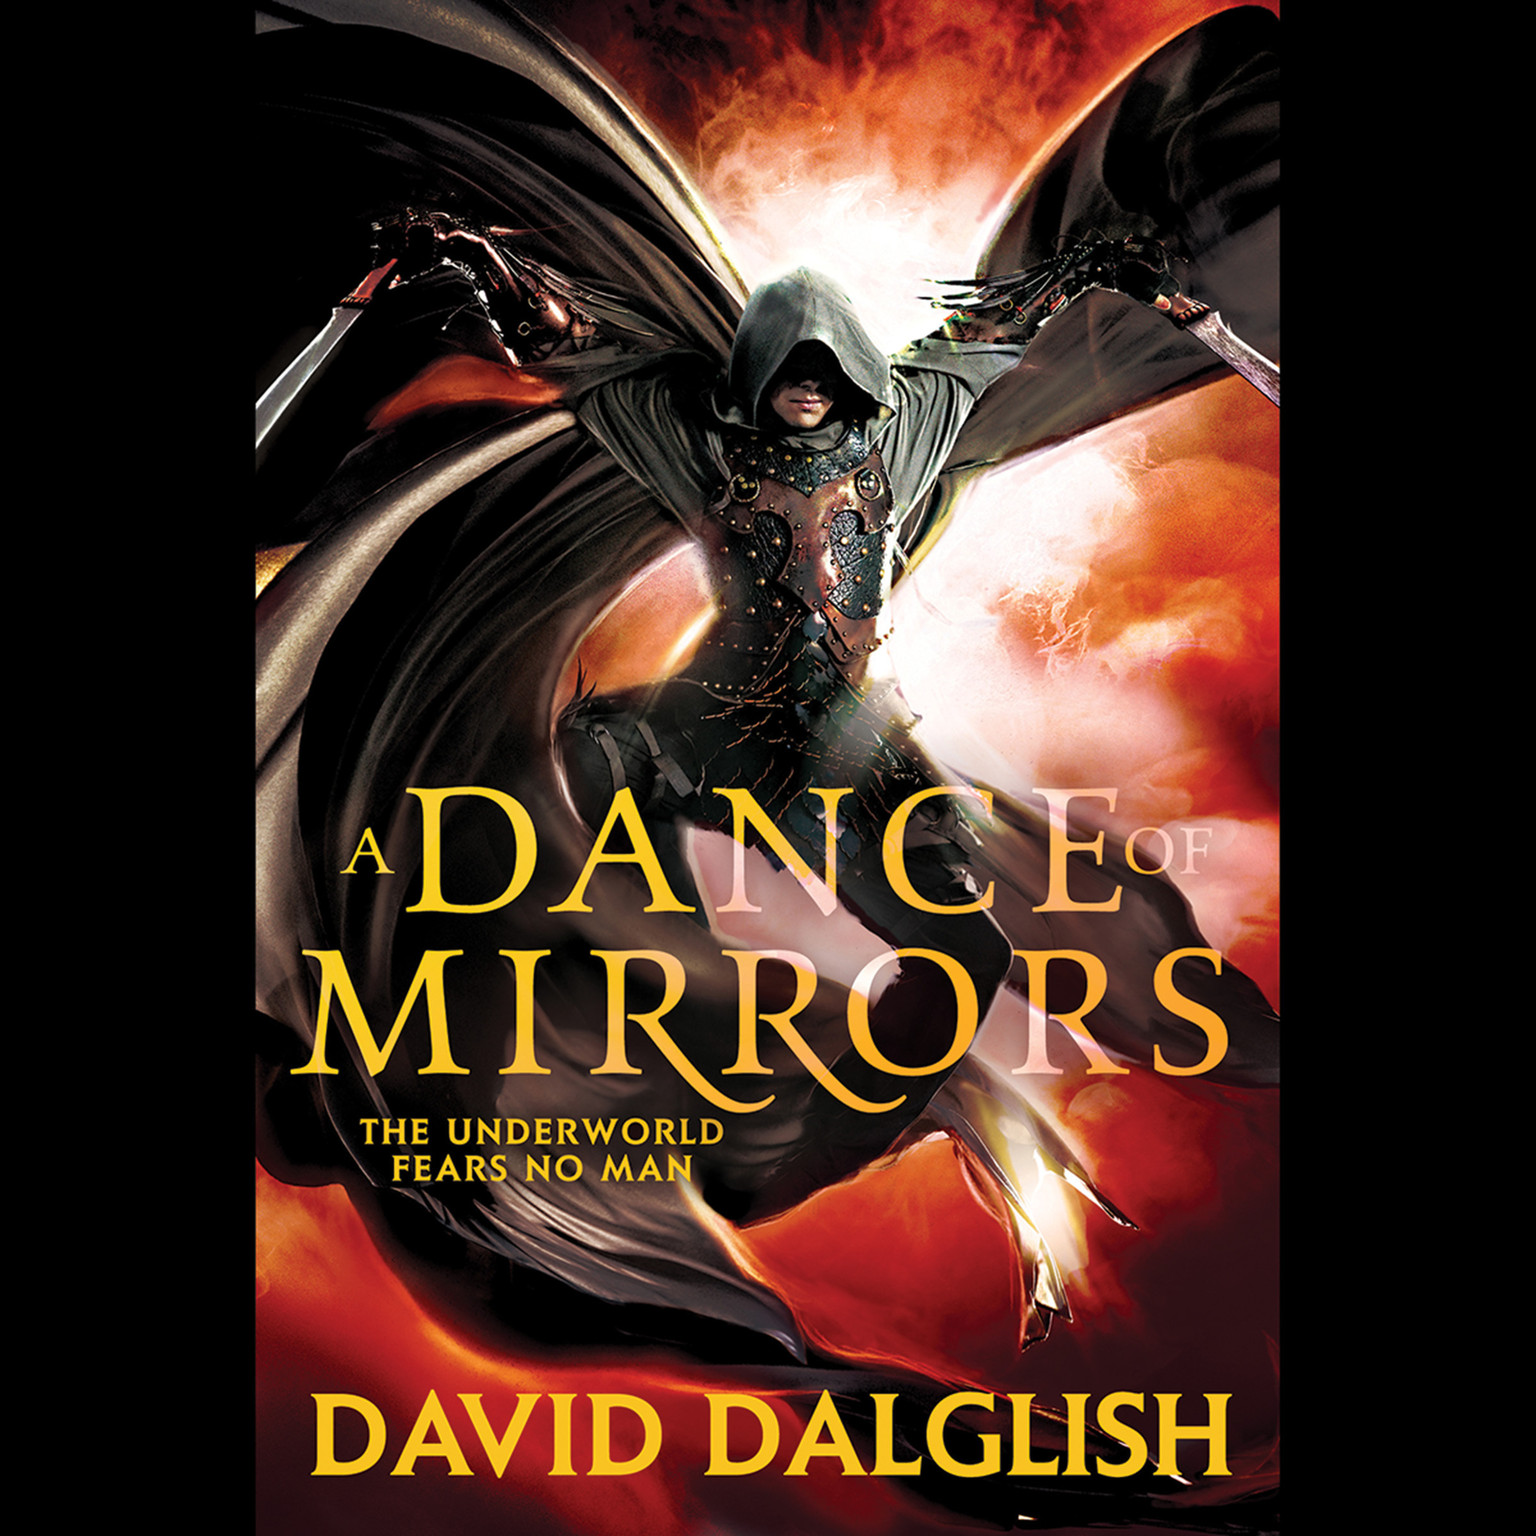 Printable A Dance of Mirrors Audiobook Cover Art